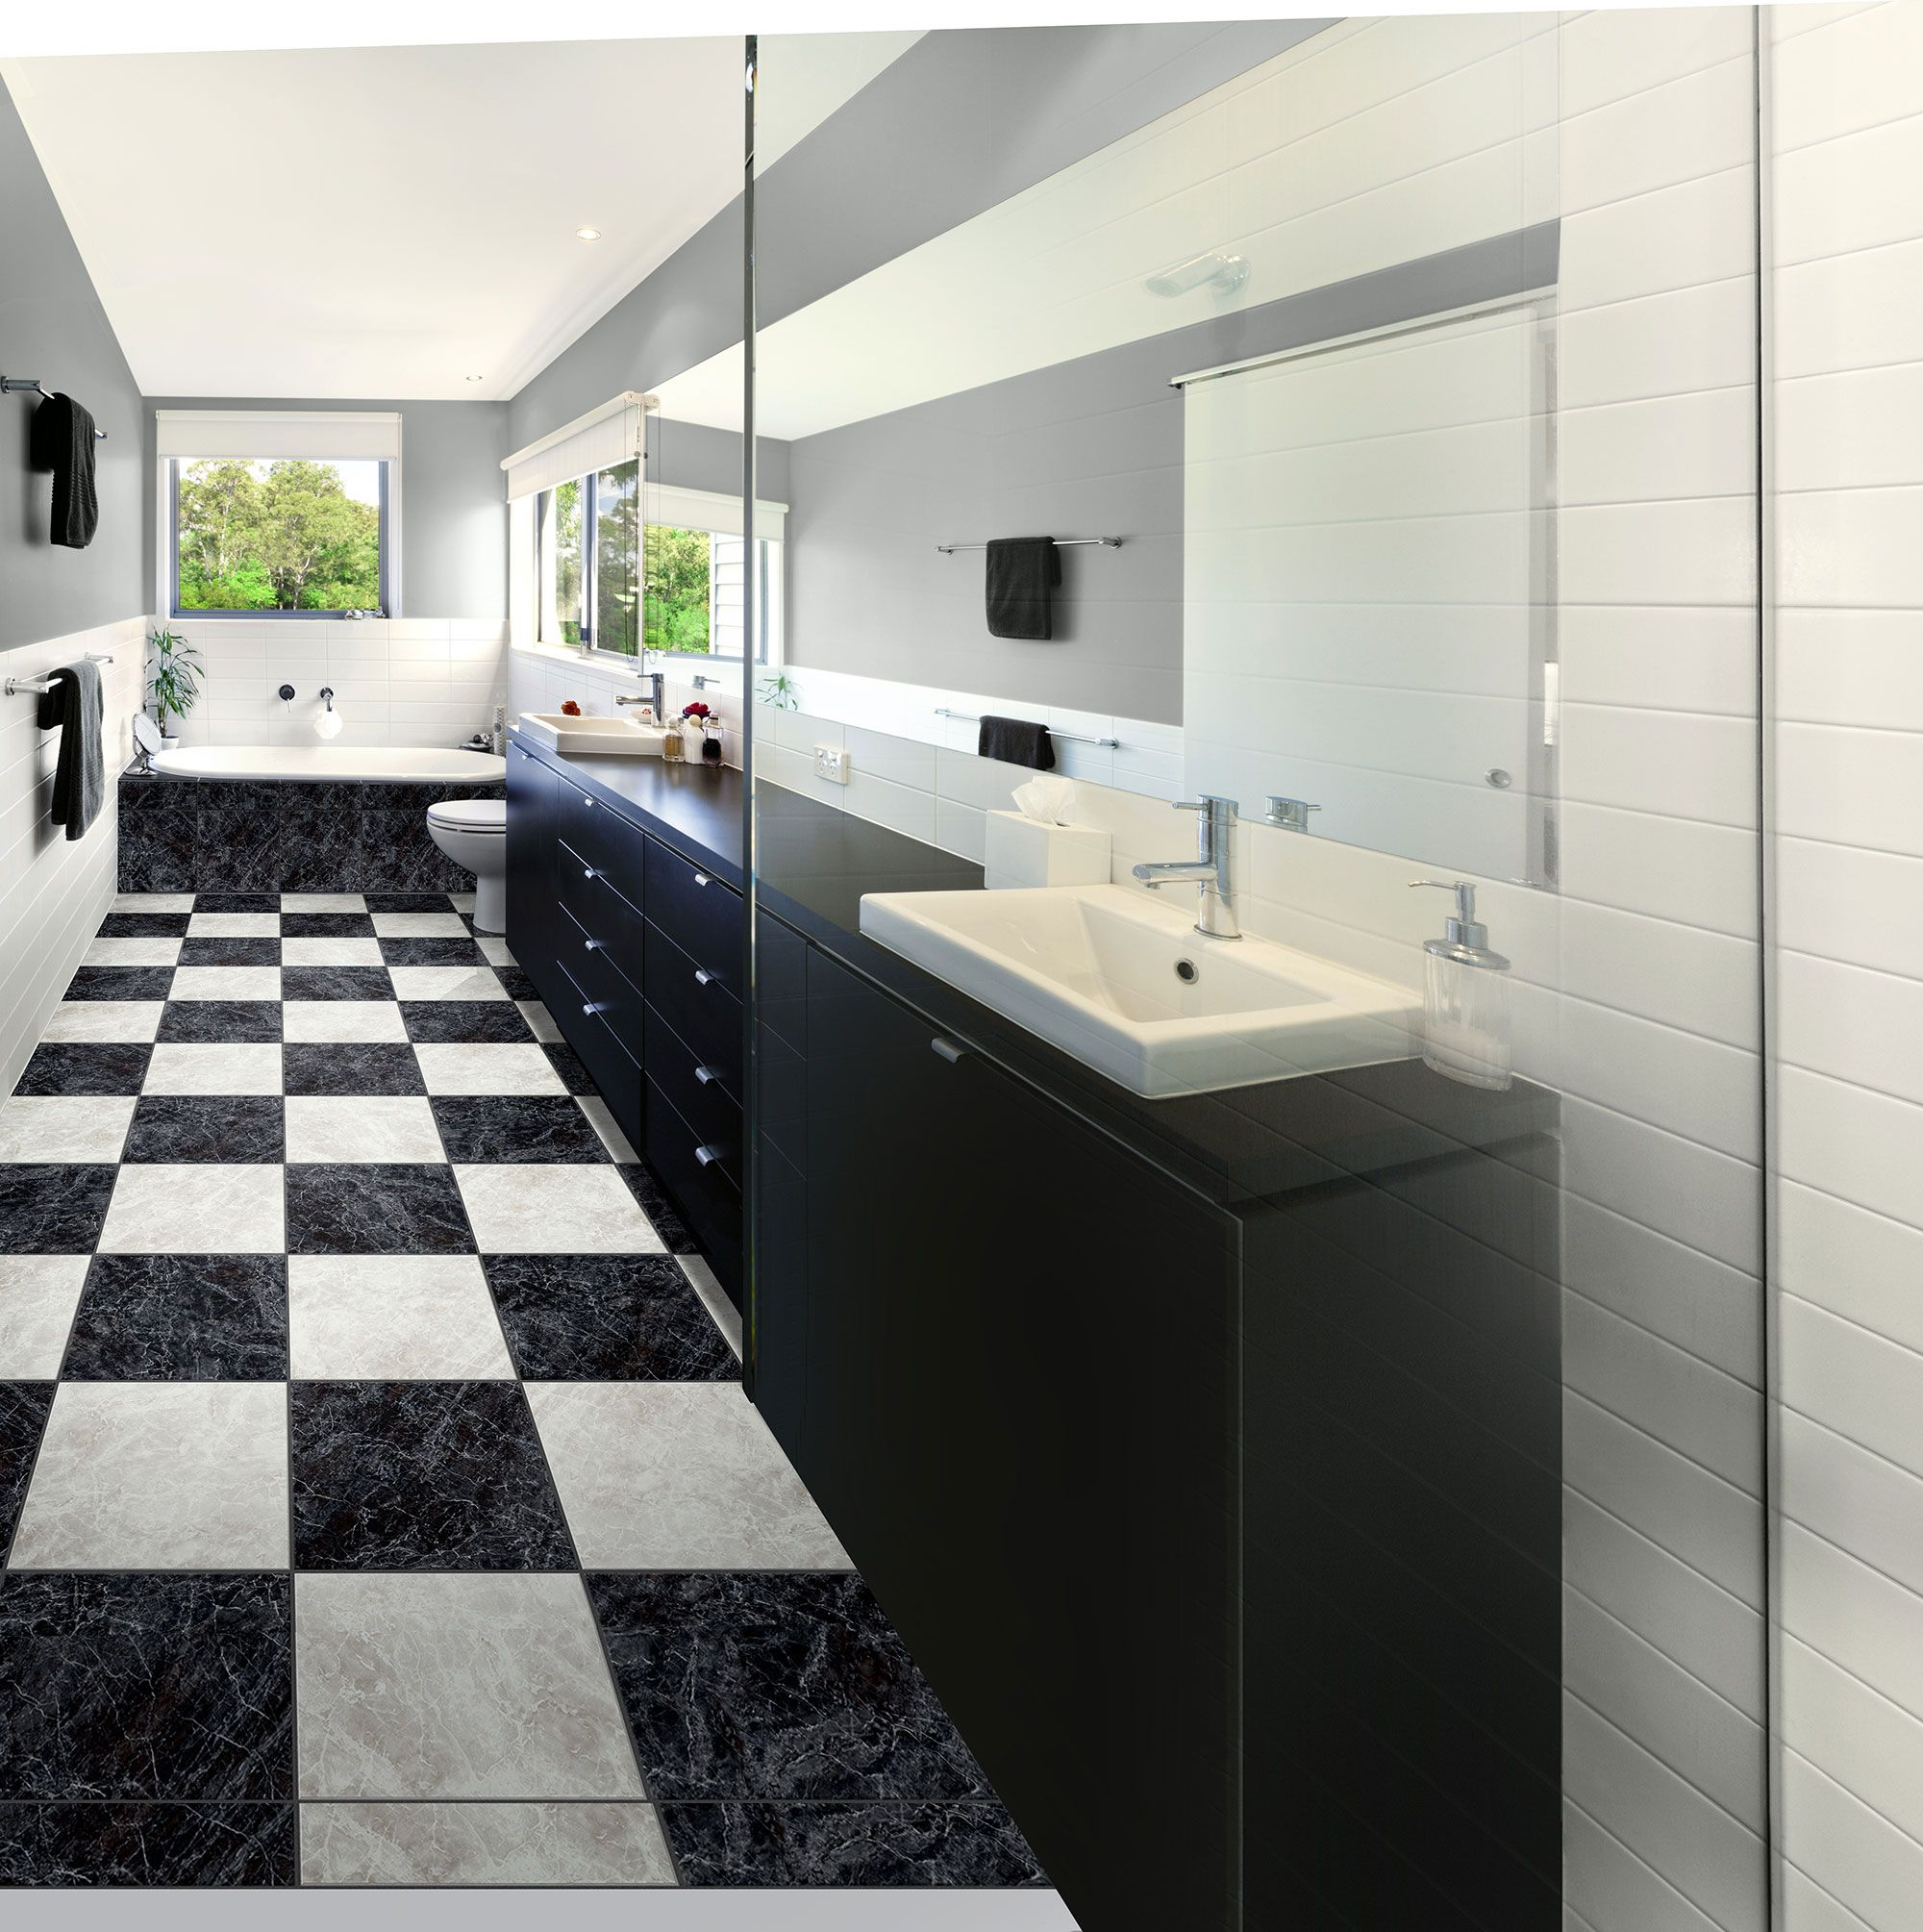 Midnight elegance learn more at olsonrug duraceramic tile with the look of real ceramic luxury vinyl tile has become extremely popular see all the latest lvt fashions at our chicago flooring store locations doublecrazyfo Images